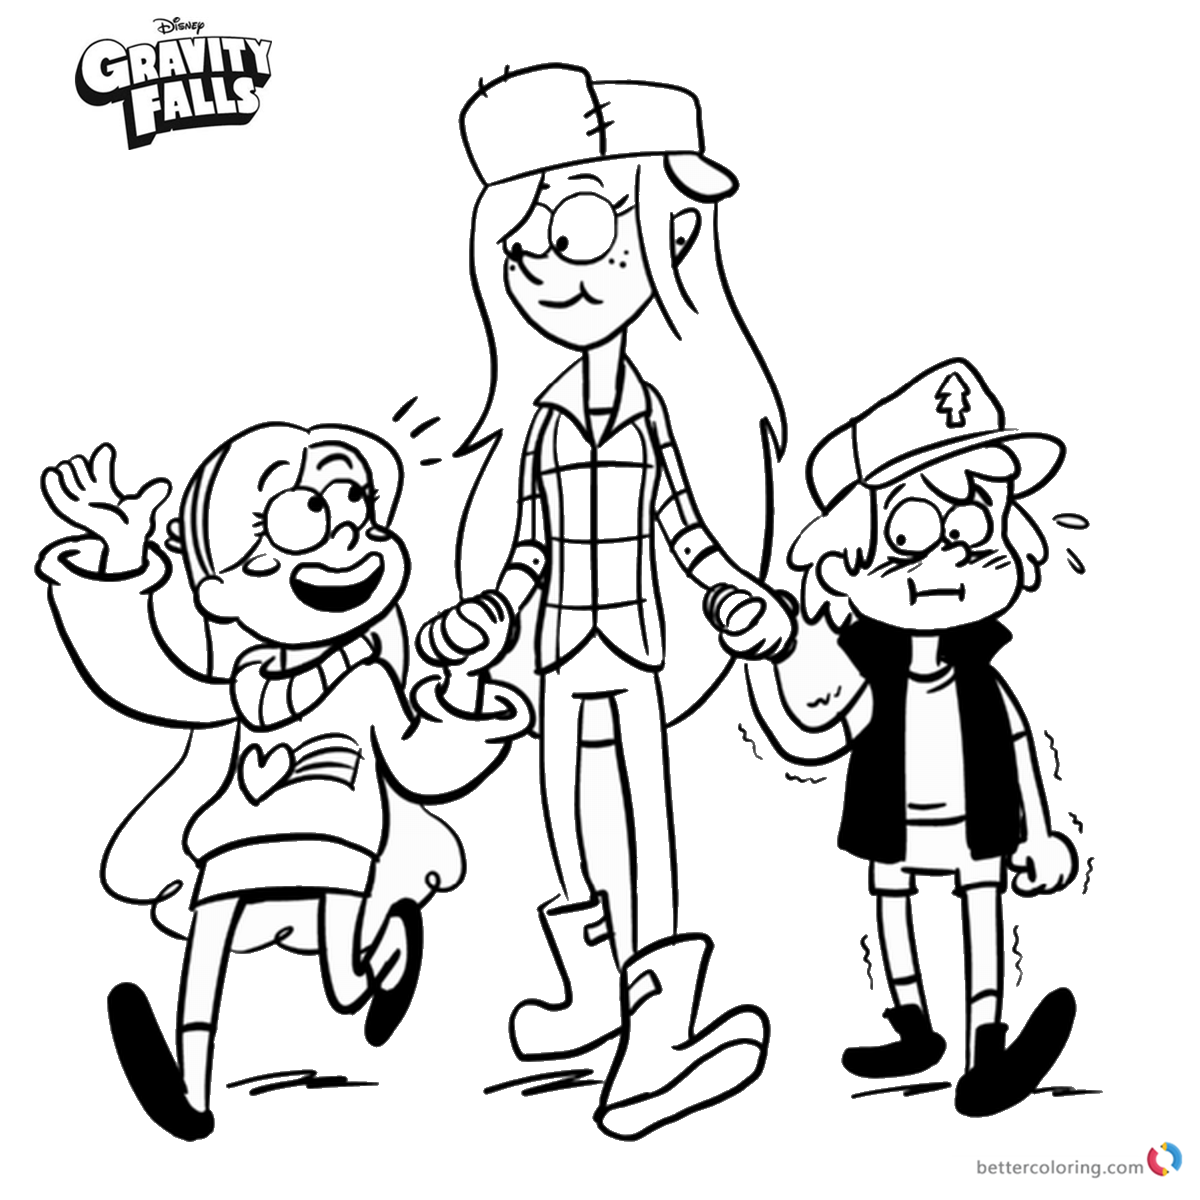 Gravity Falls coloring pages Wendy Mabel and Dipper printable